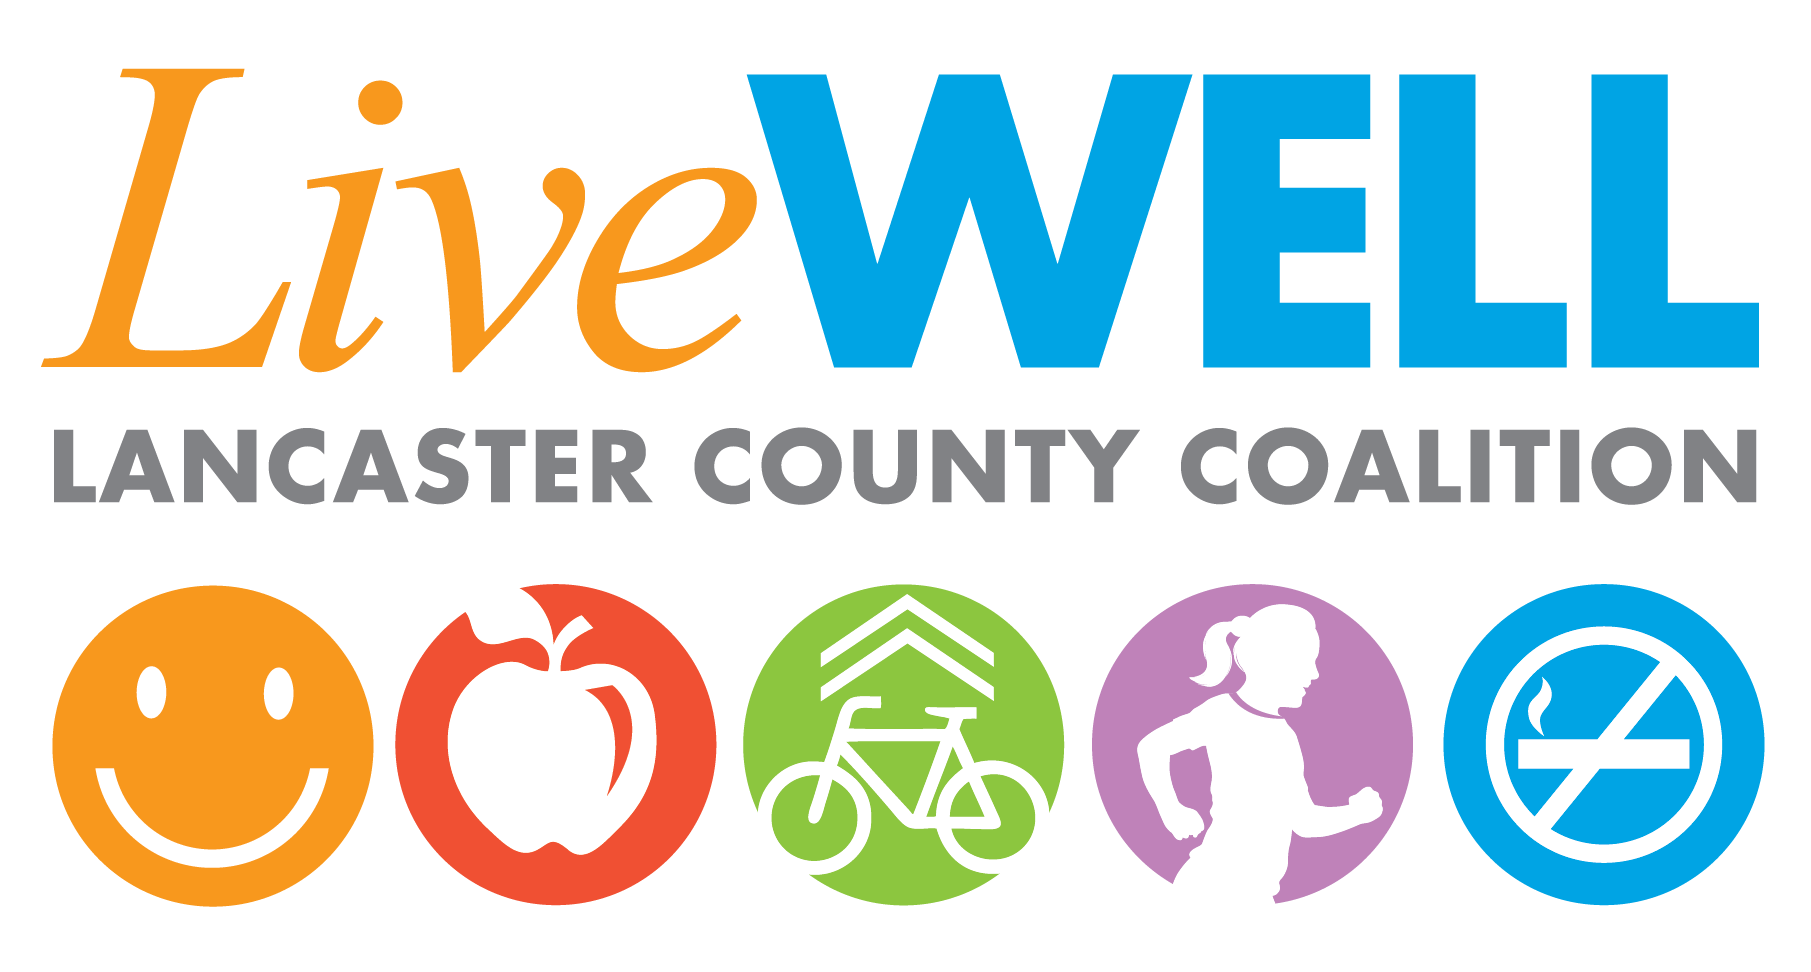 LiveWELL Lancaster County